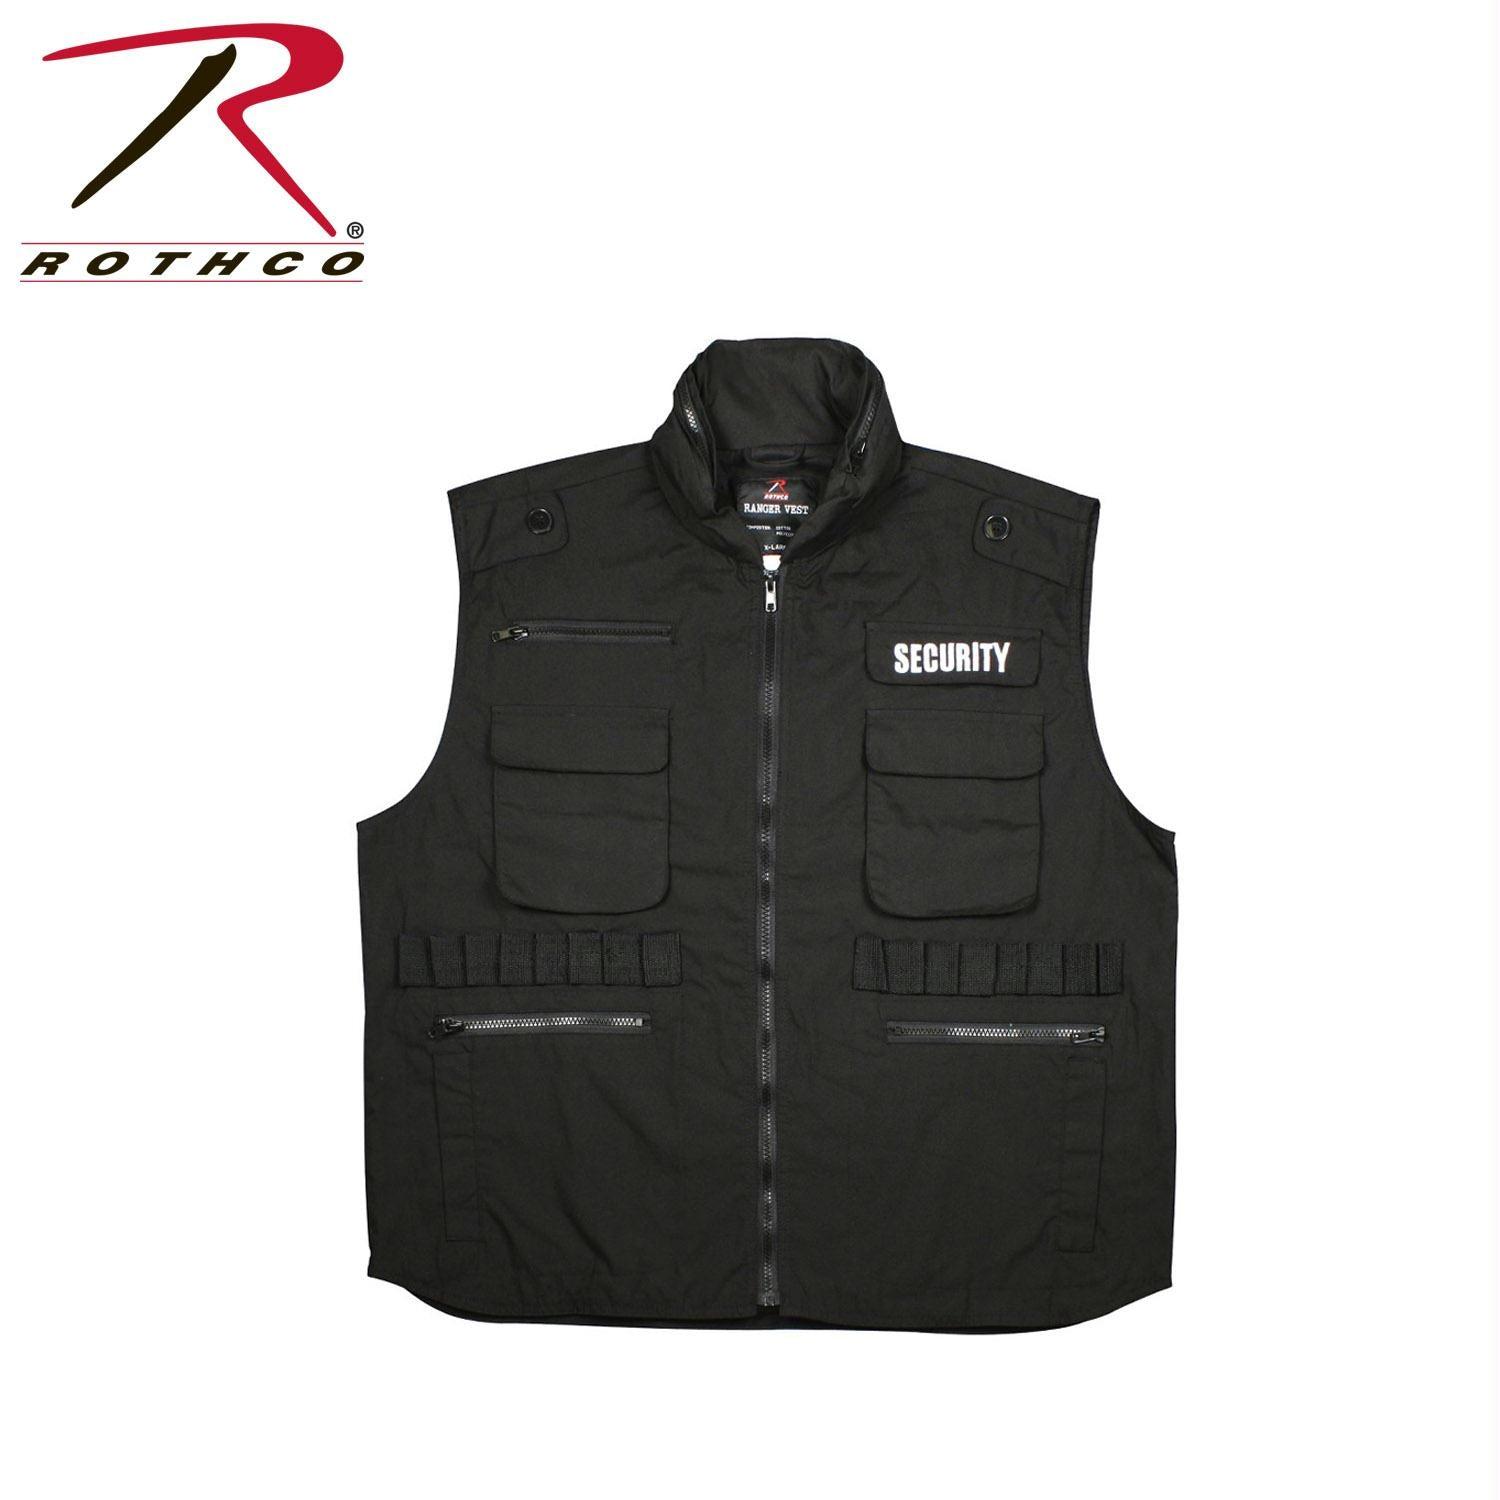 Rothco Security Ranger Vest - M